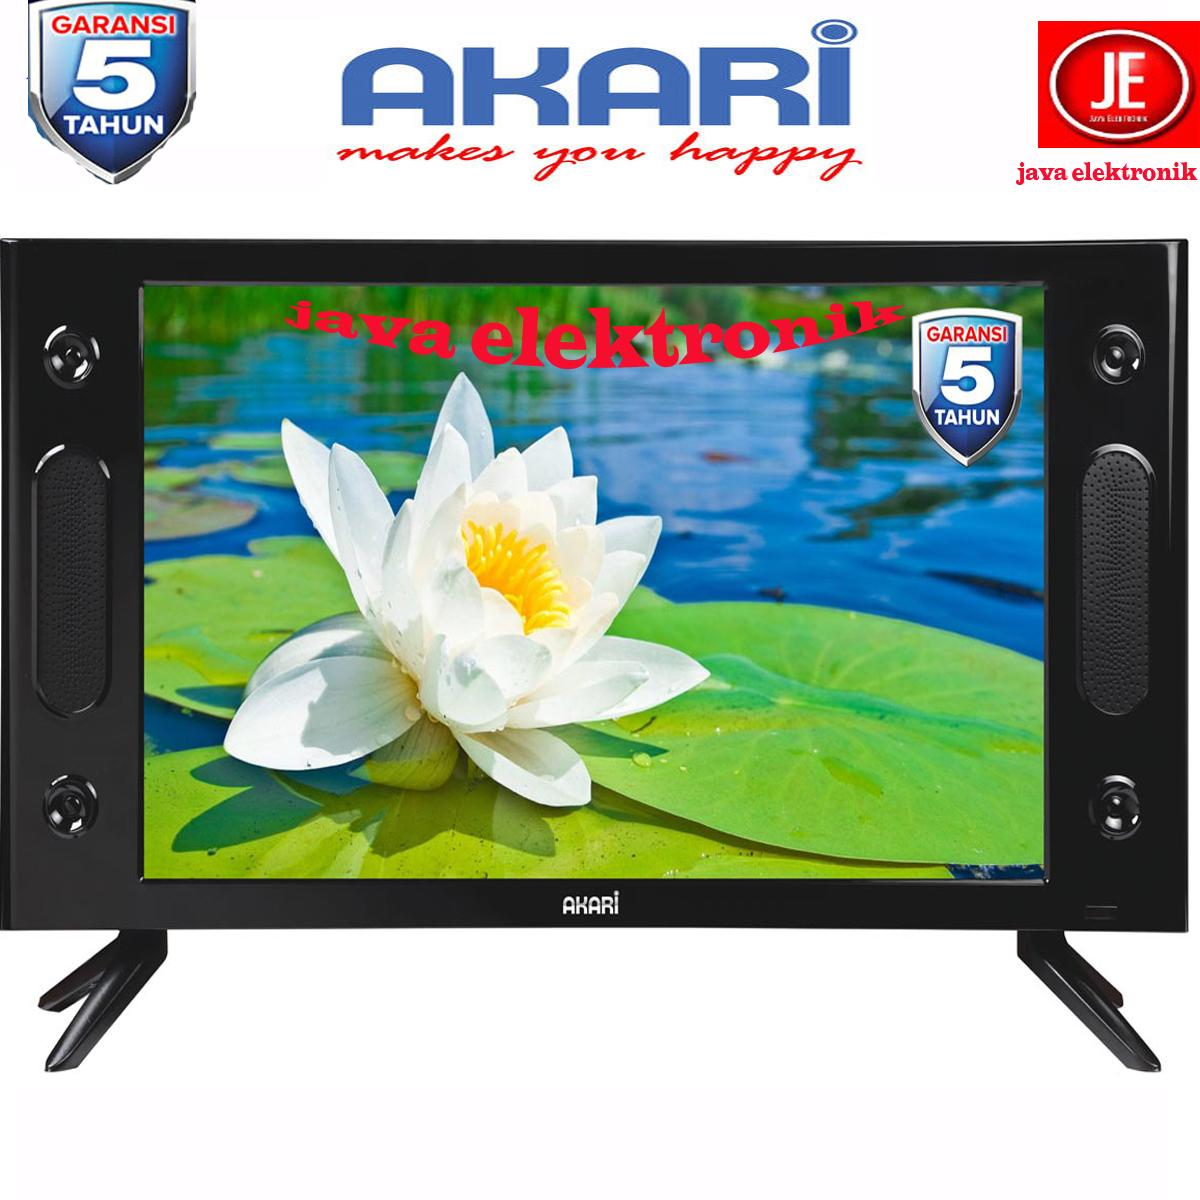 AKARI HD Ready LED TV w/ USB Movie 25-inchi - LE-25V89 - 5 tahun garansi resmi